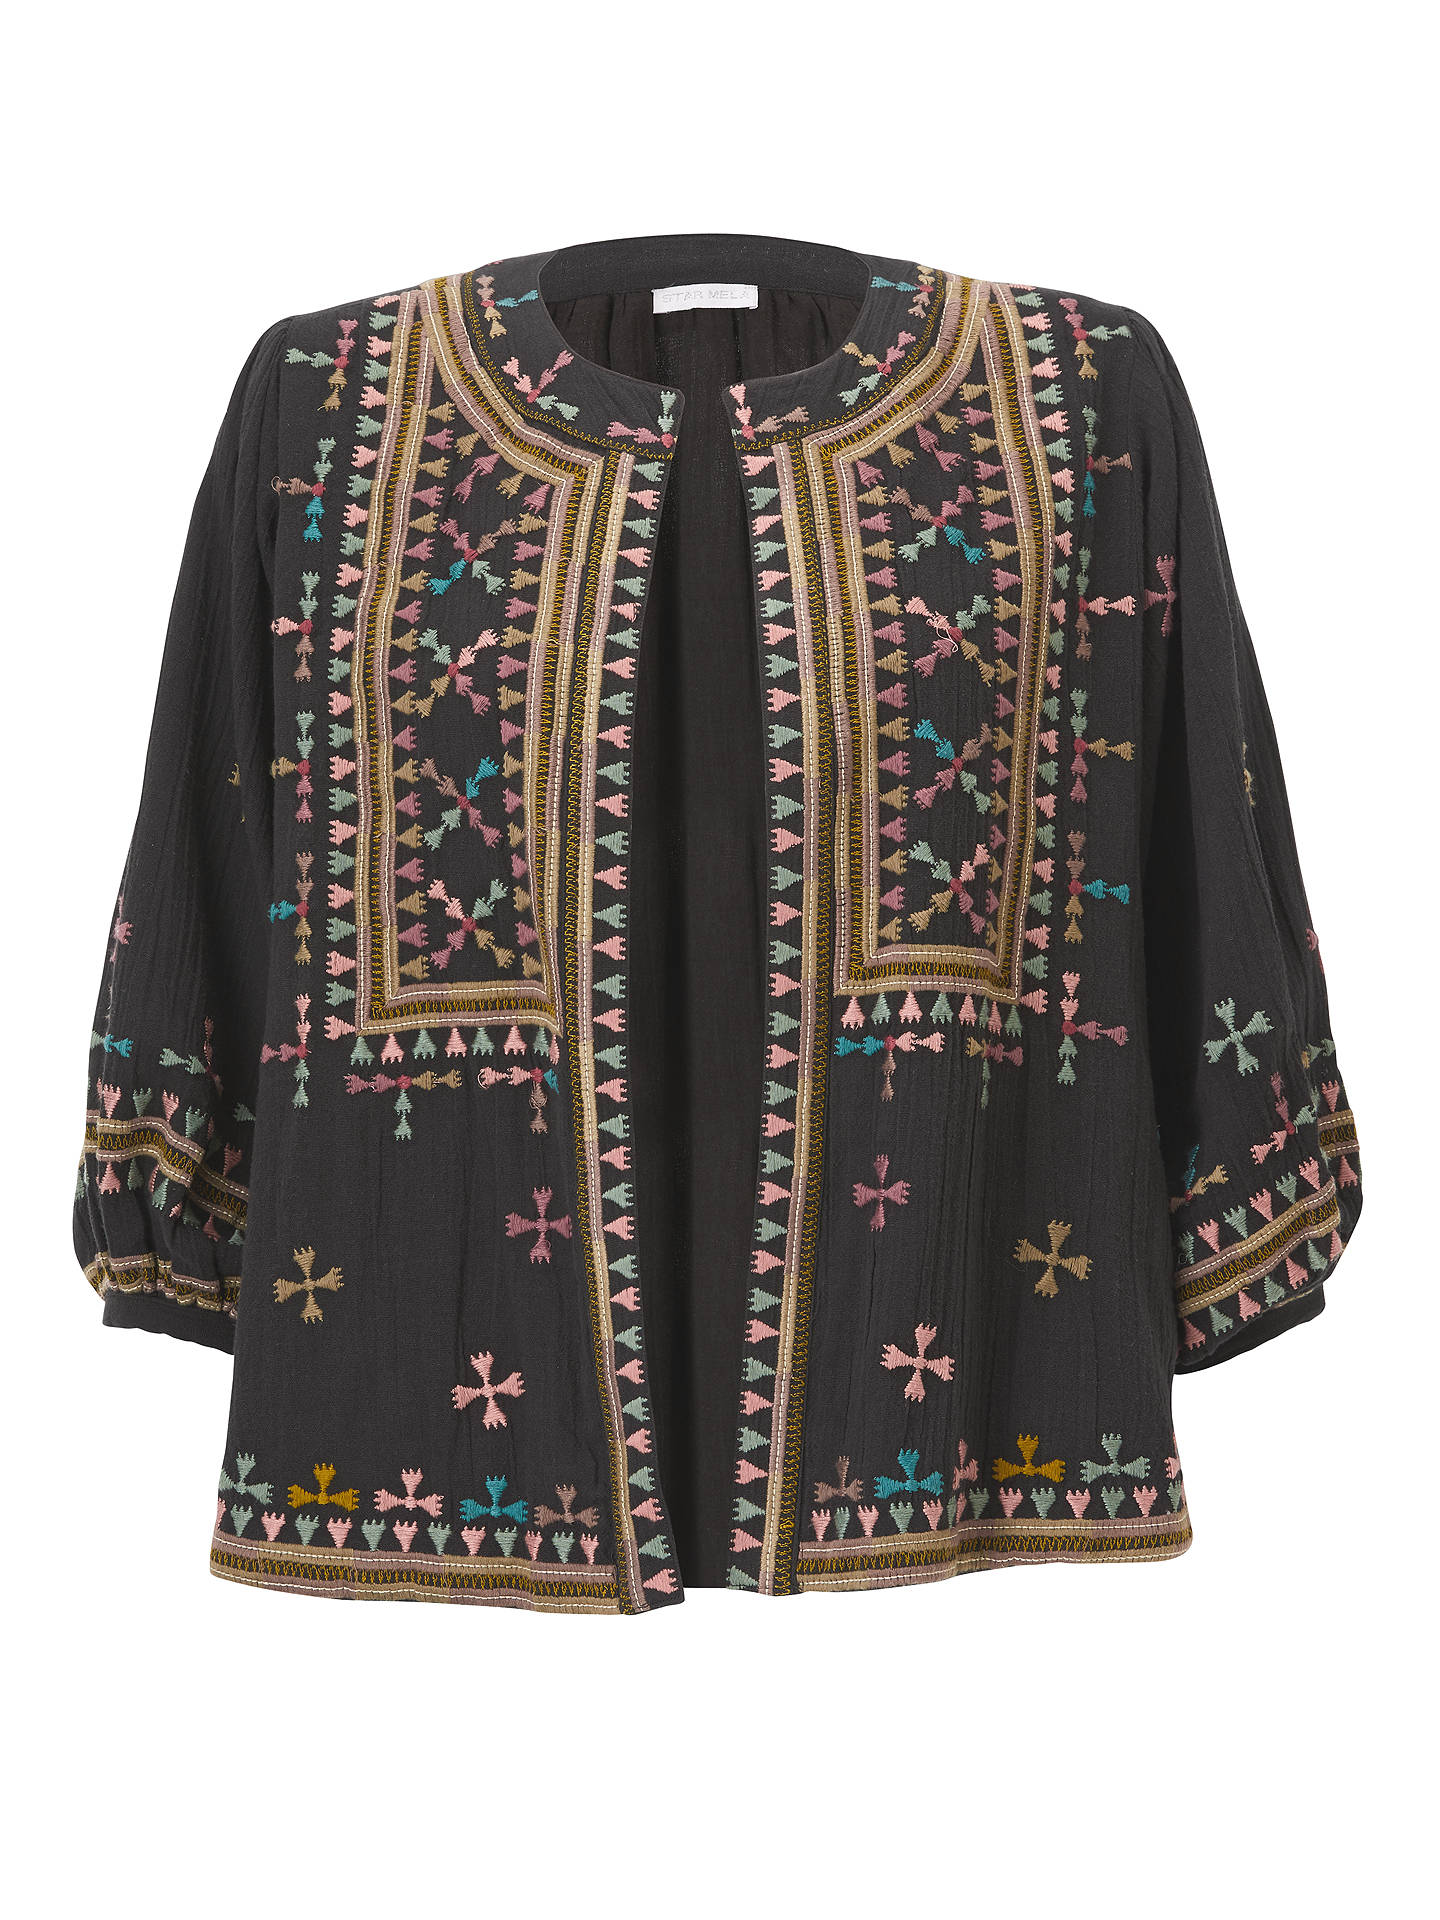 b6610f84c8 ... Buy Star Mela Fabiana Embroidered Jacket